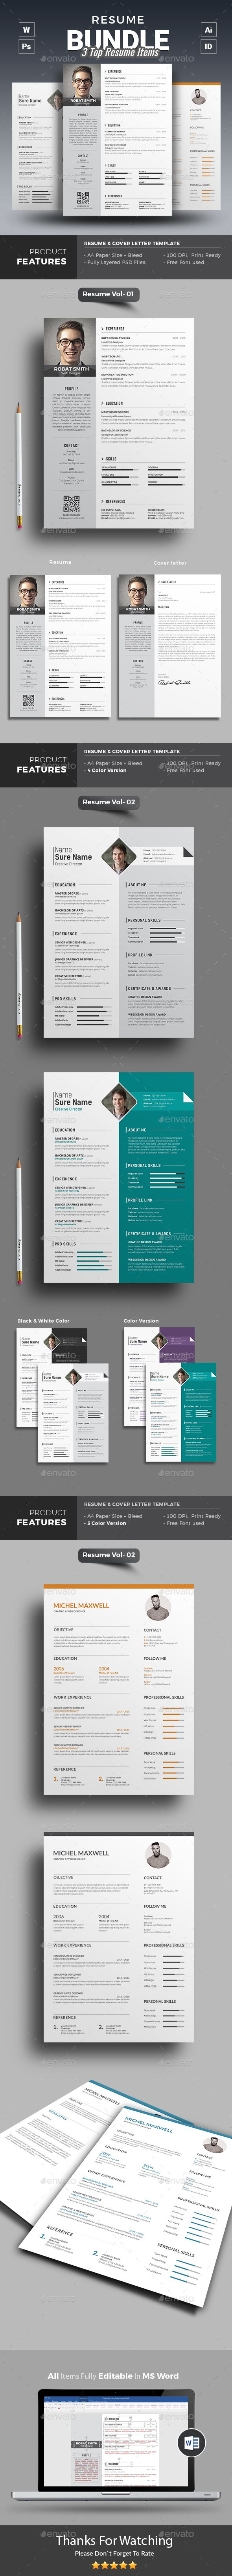 Resume - Resumes Stationery Download here: https://graphicriver.net/item/resume/19983149?https://graphicriver.net/item/resume/19982405?ref=classicdesignp